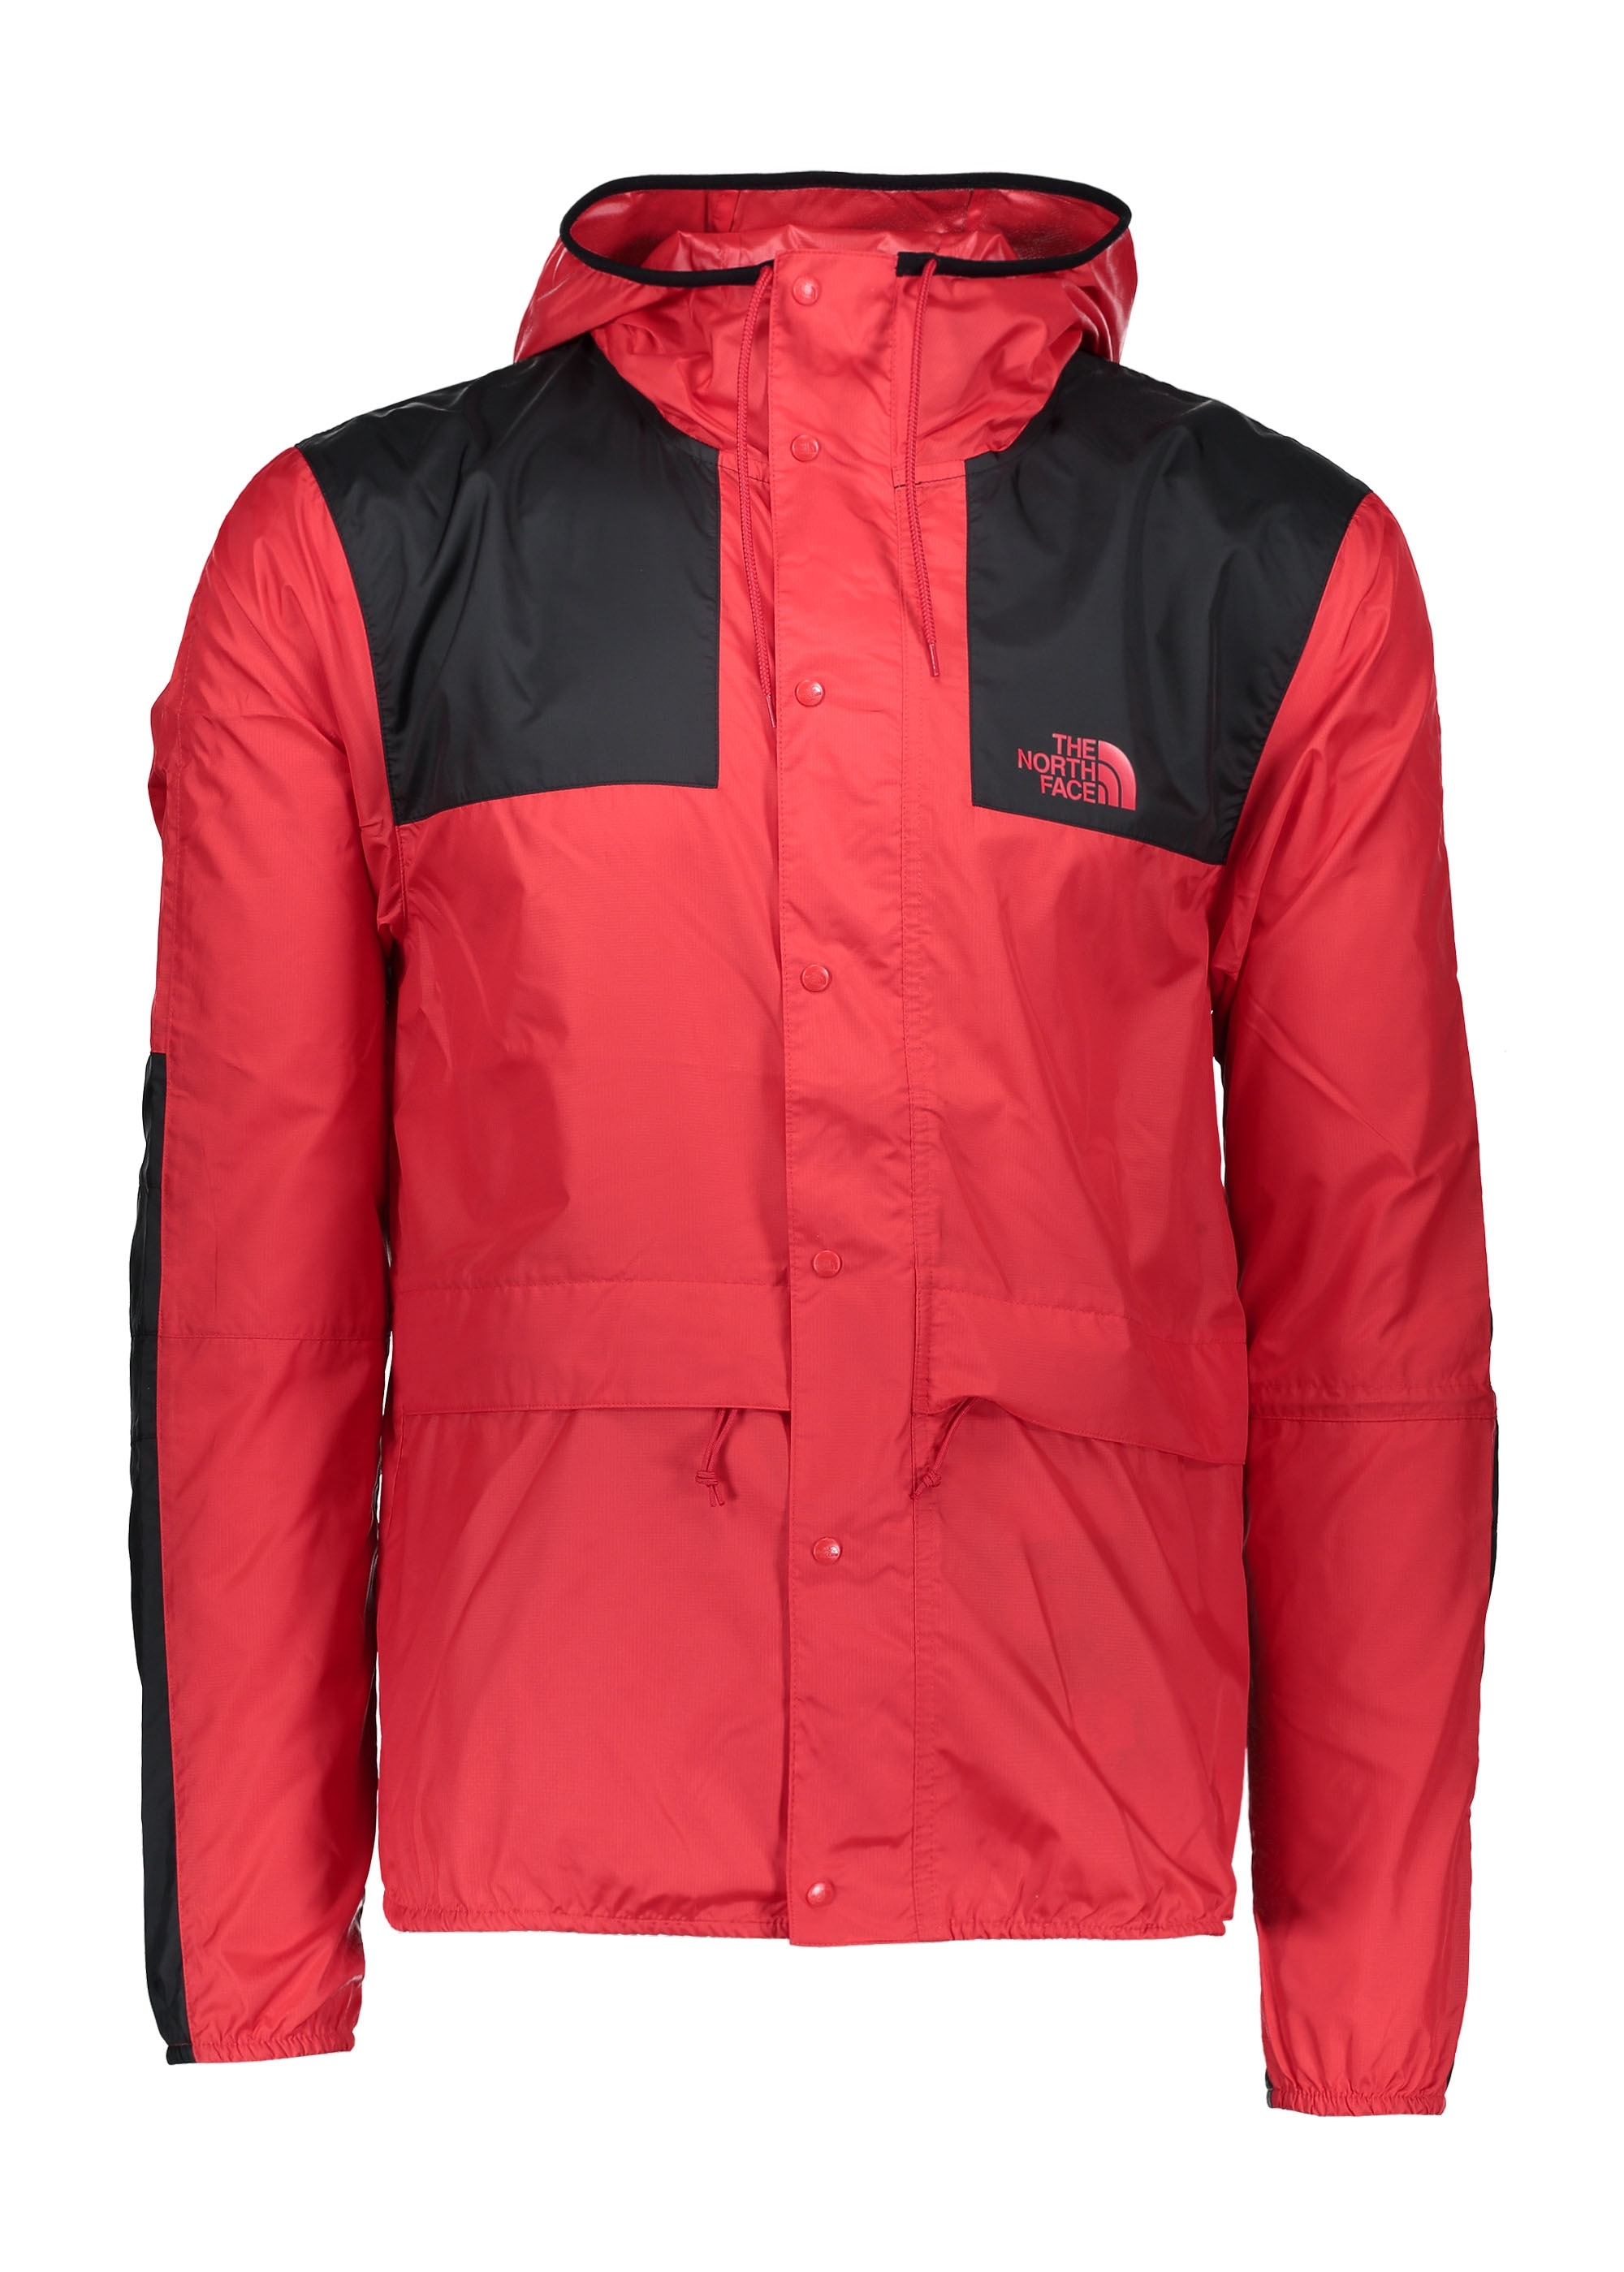 The North Face 1985 Mountain Jacket Red Black Triads Mens From